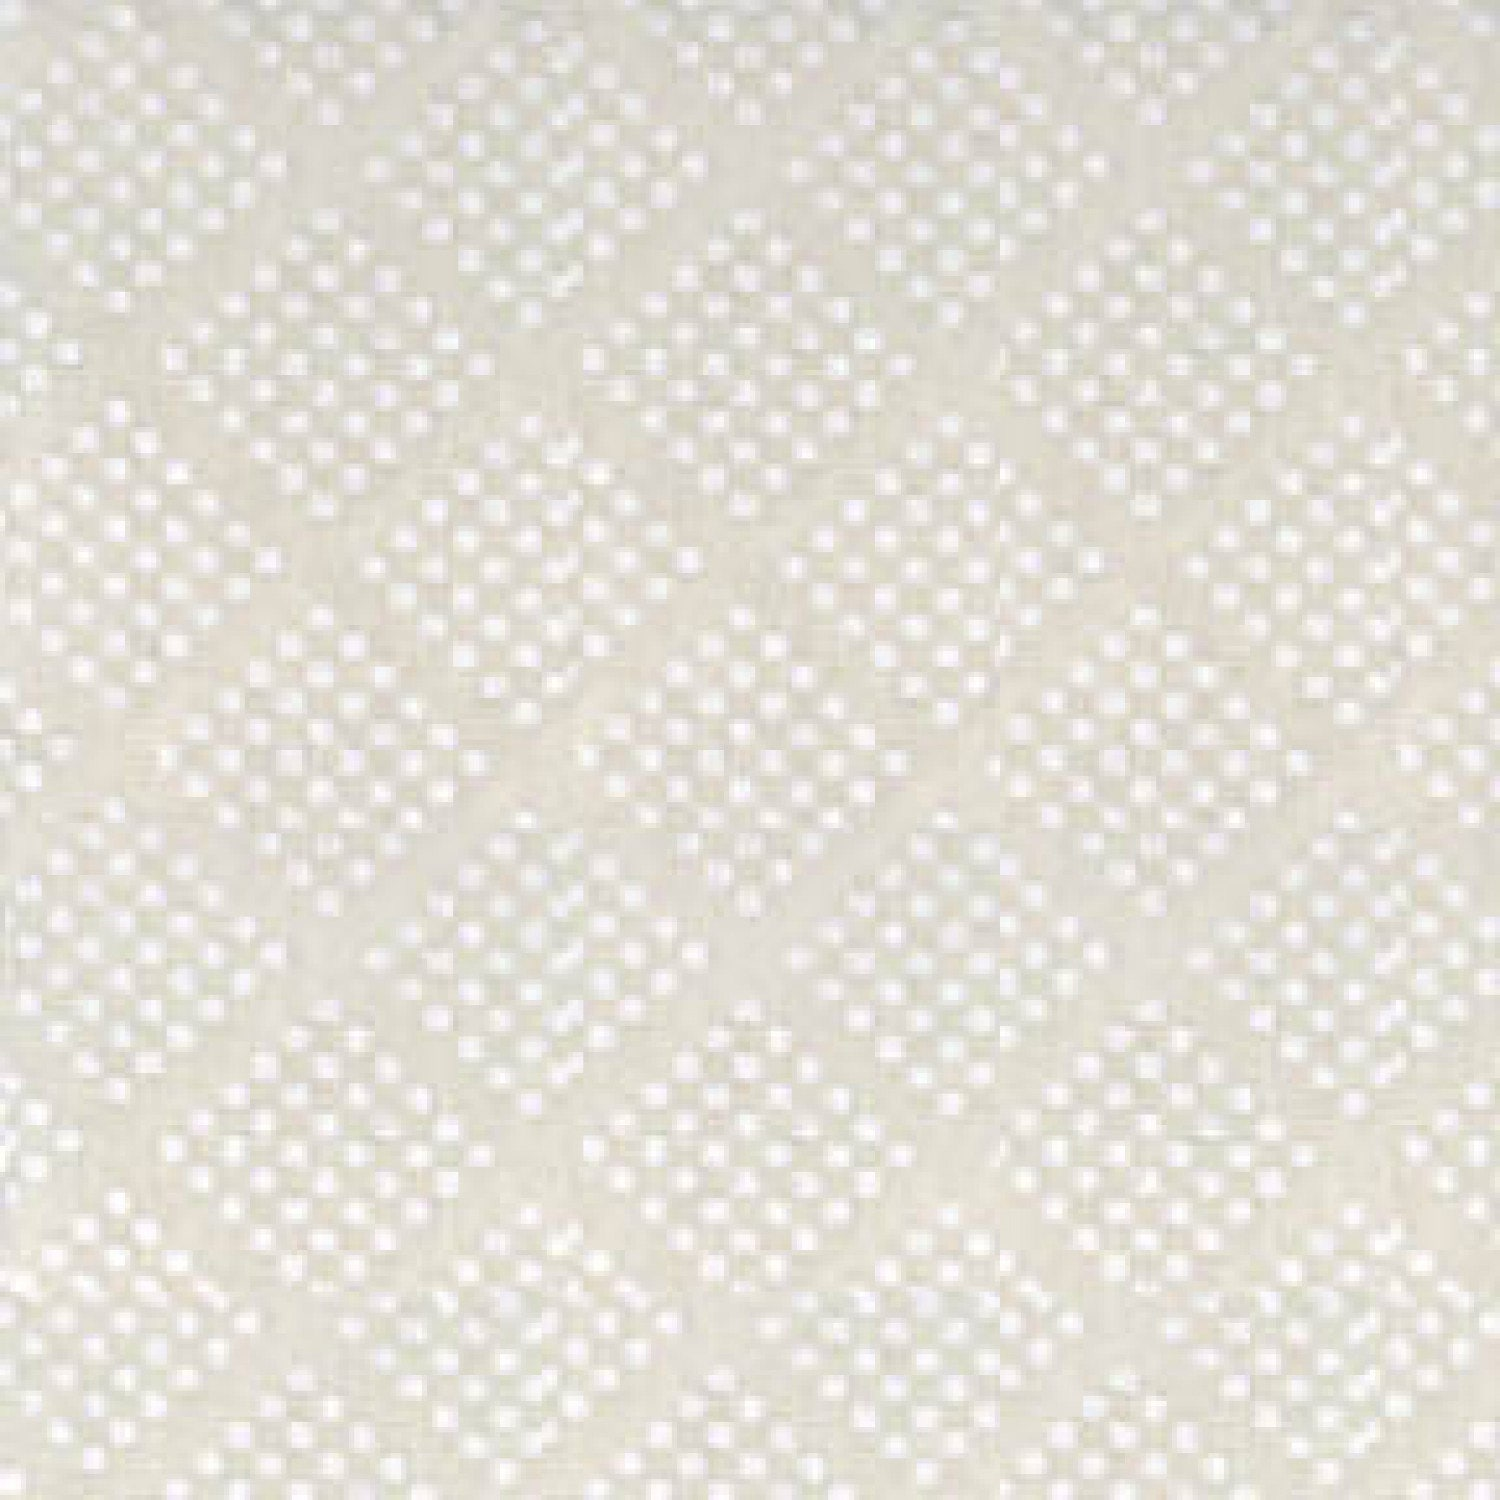 Tone on Tone White Diamonds 47727 WW Priced by the half yard Solid Off-White Fabric